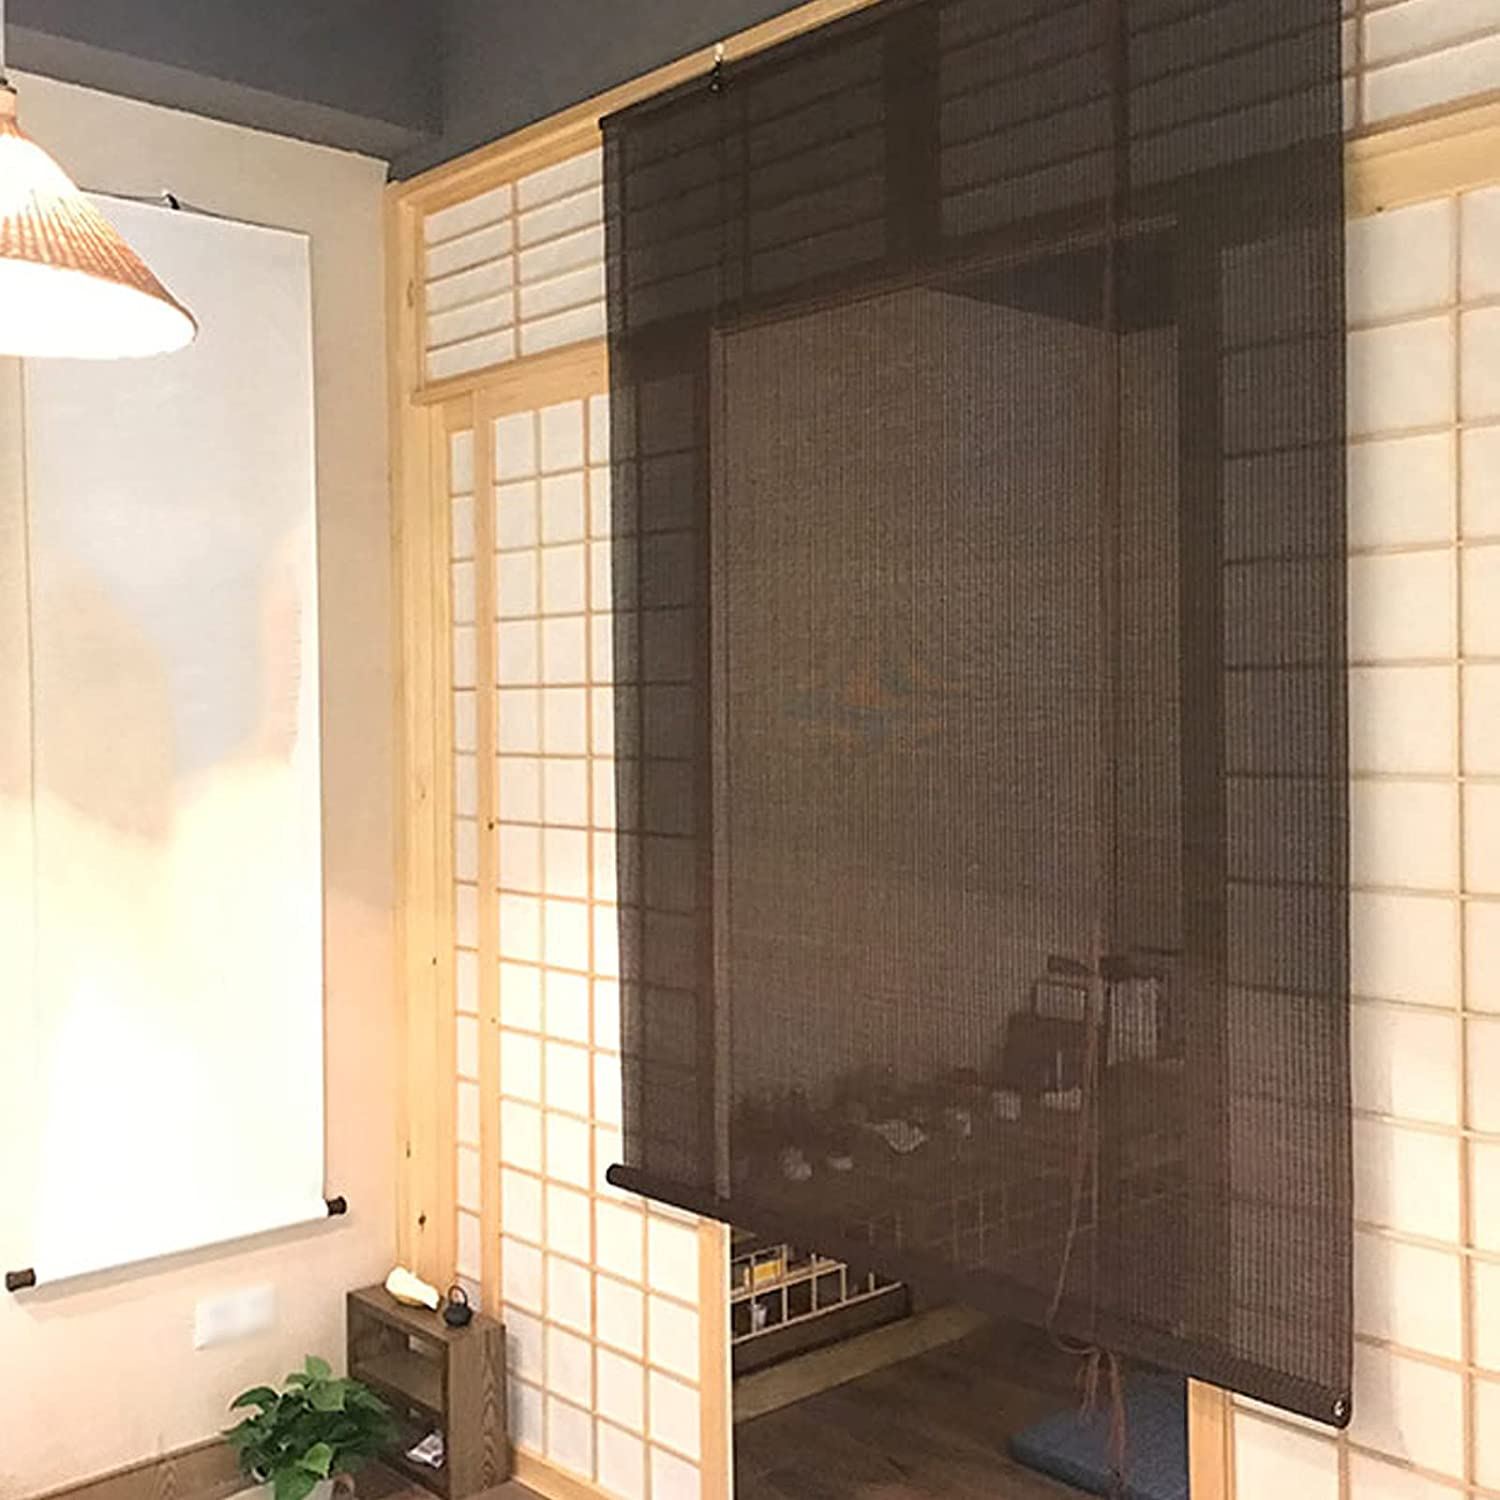 Zlovne Black Max 51% OFFicial OFF Bamboo Roll Up with Lifter Window Blinds Ba